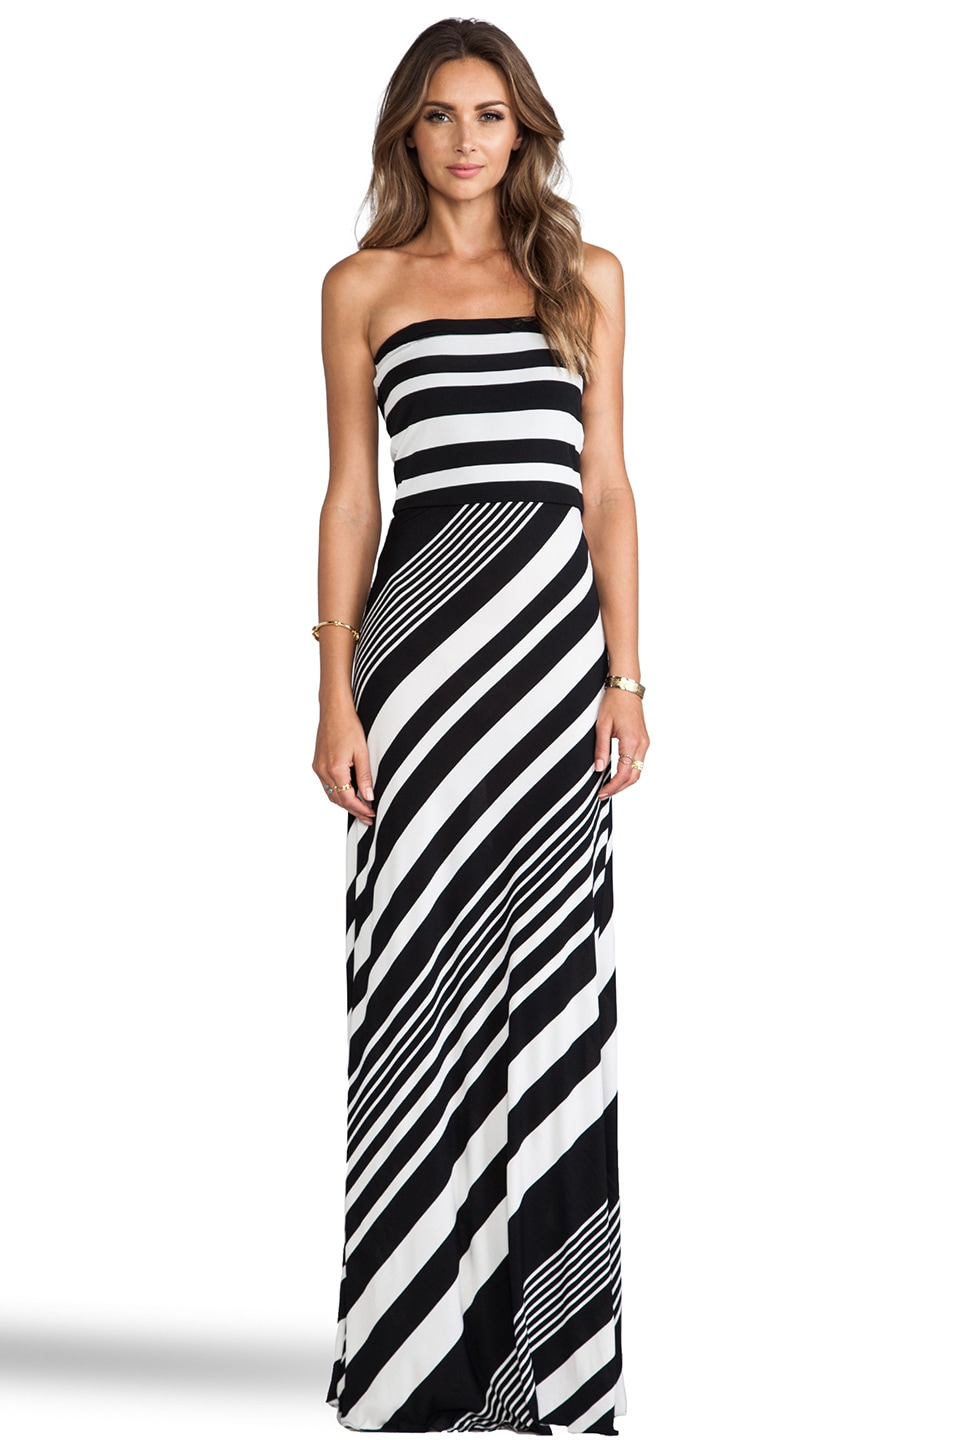 MM Couture by Miss Me Striped Strapless Maxi Dress in Black & White